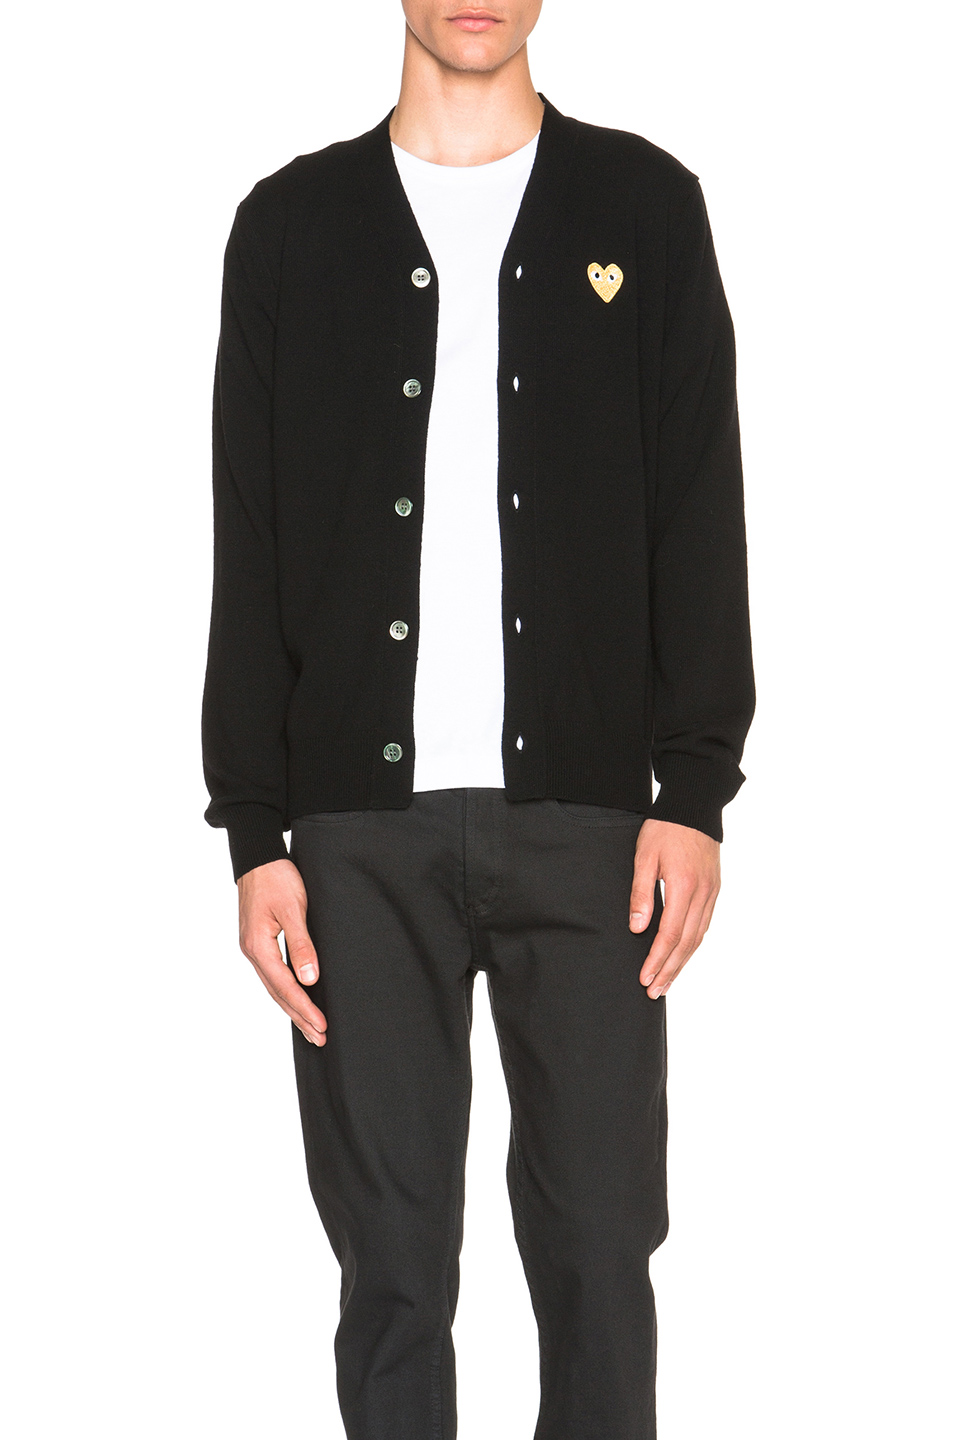 Comme Des Garcons PLAY Cardigan with Gold Emblem in Black